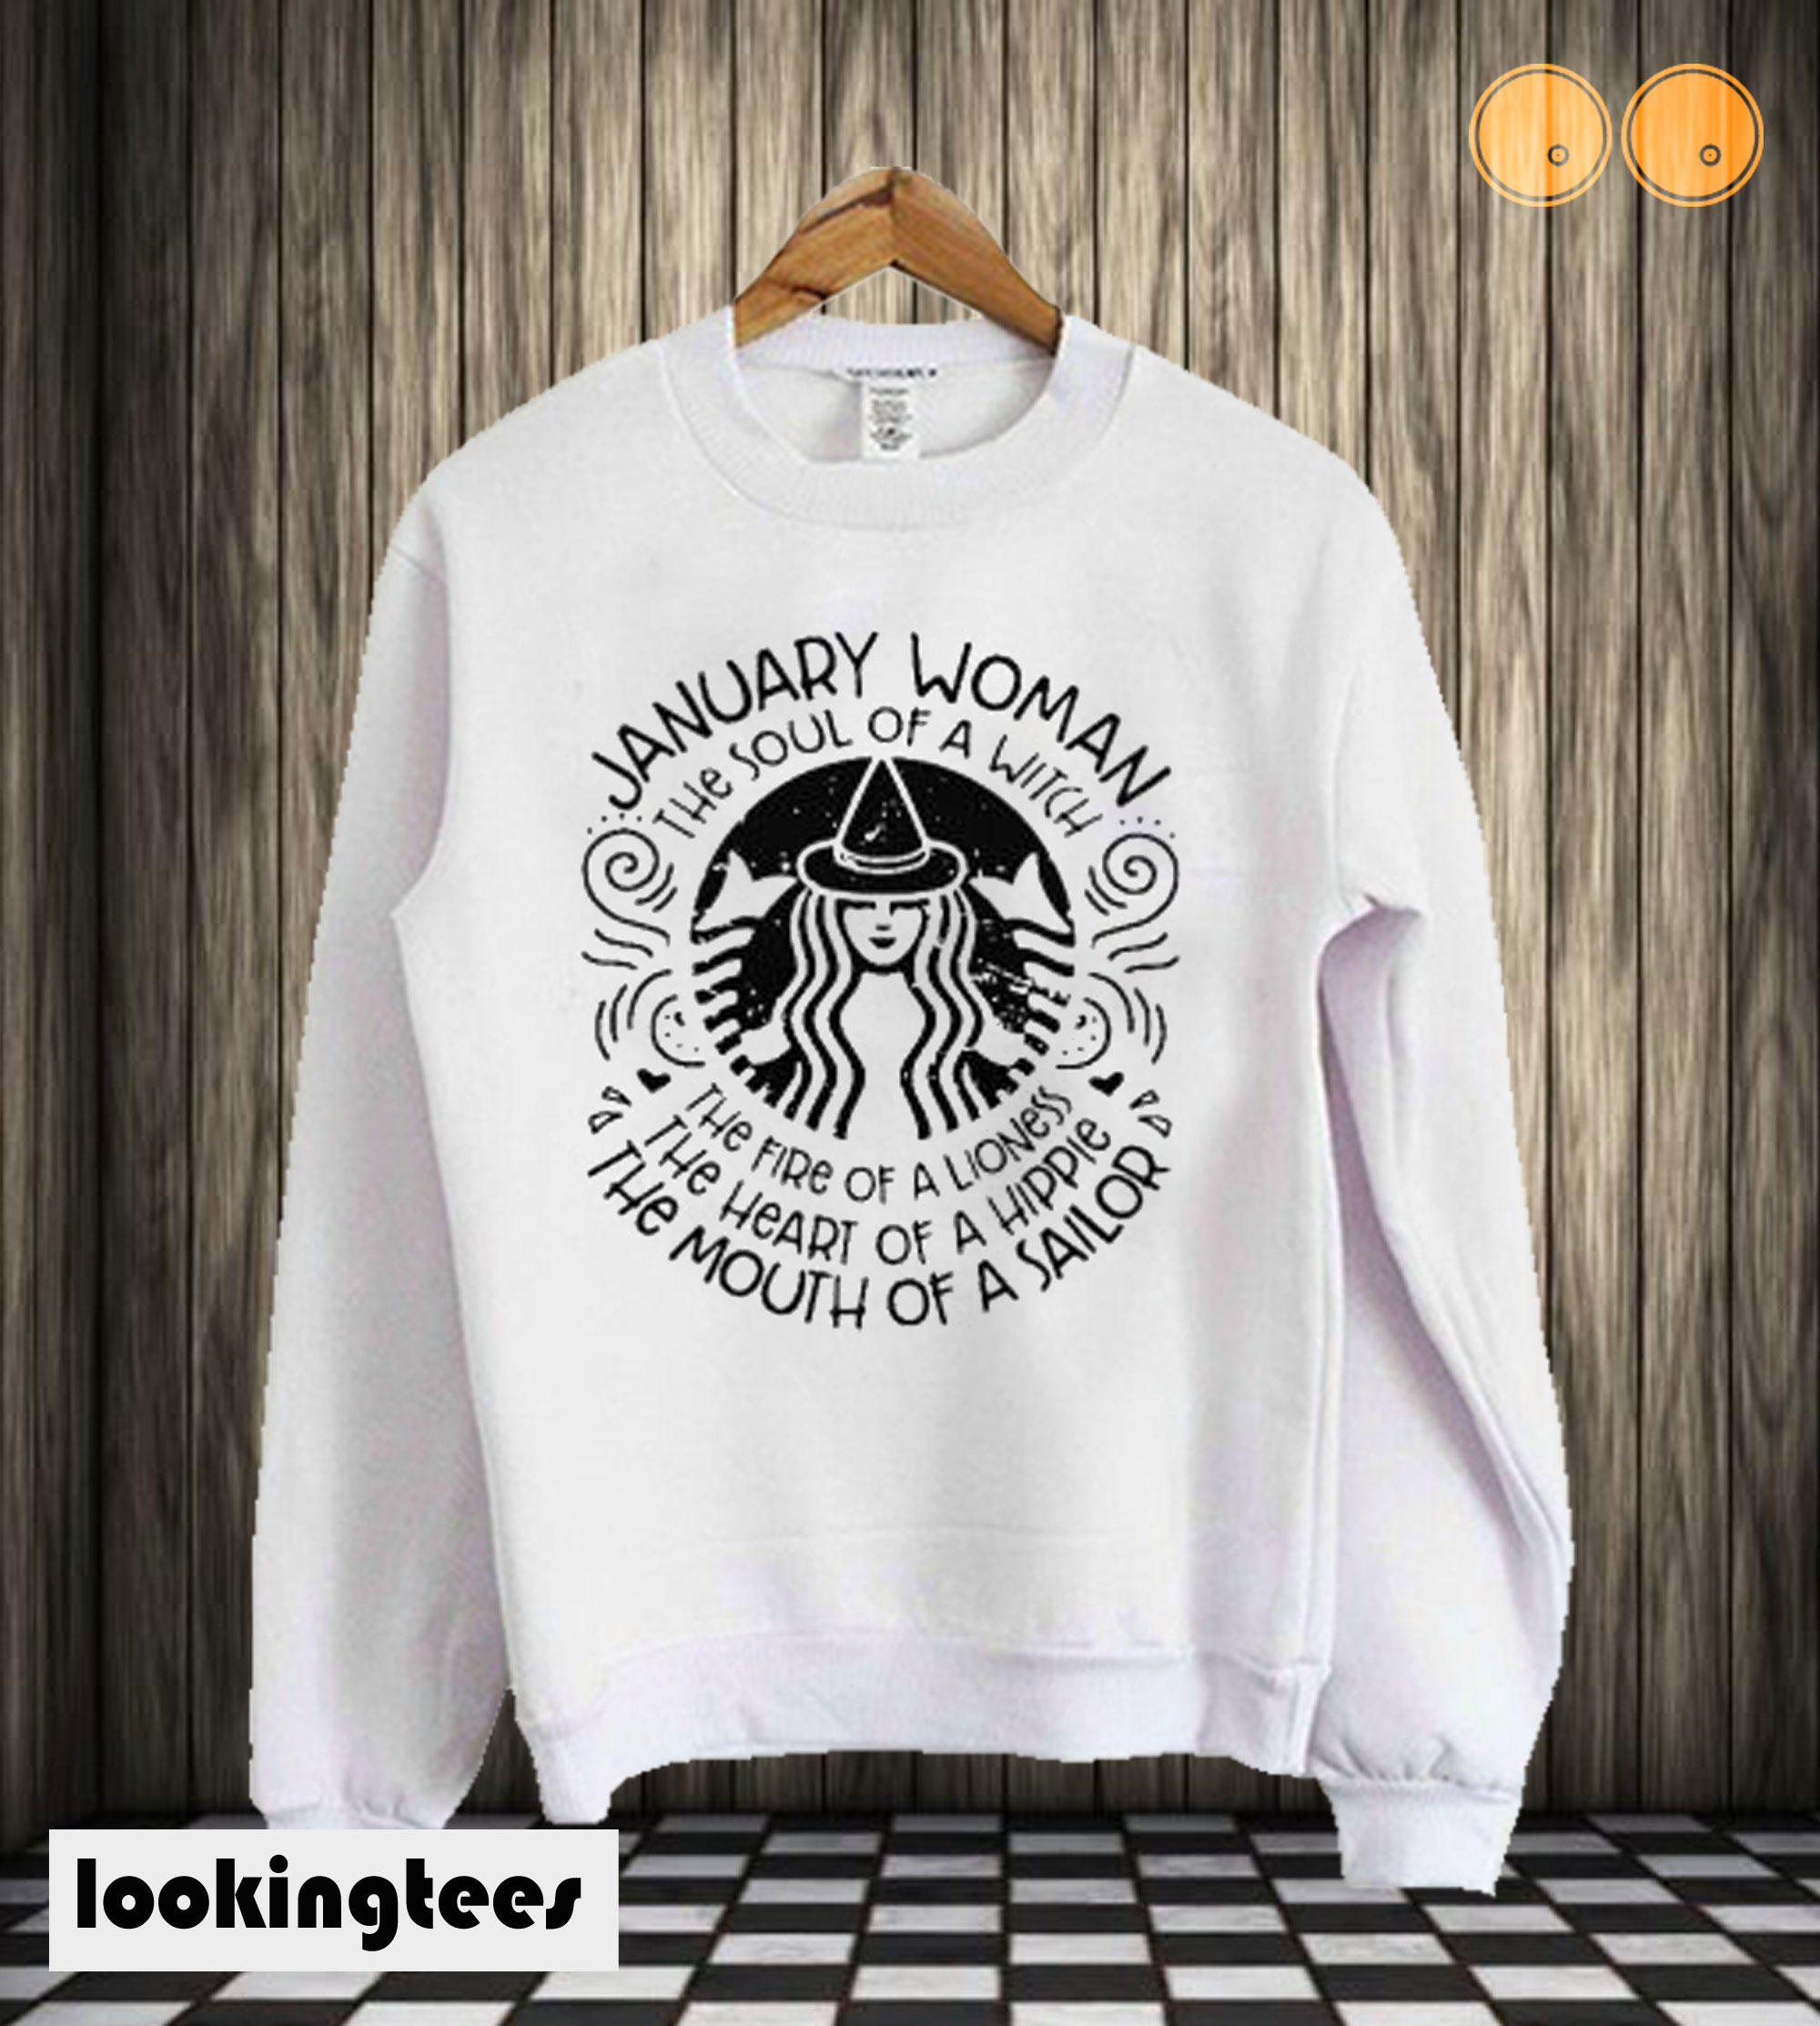 January woman the soul of witch the mouth of Sailor Starbucks Sweatshirt